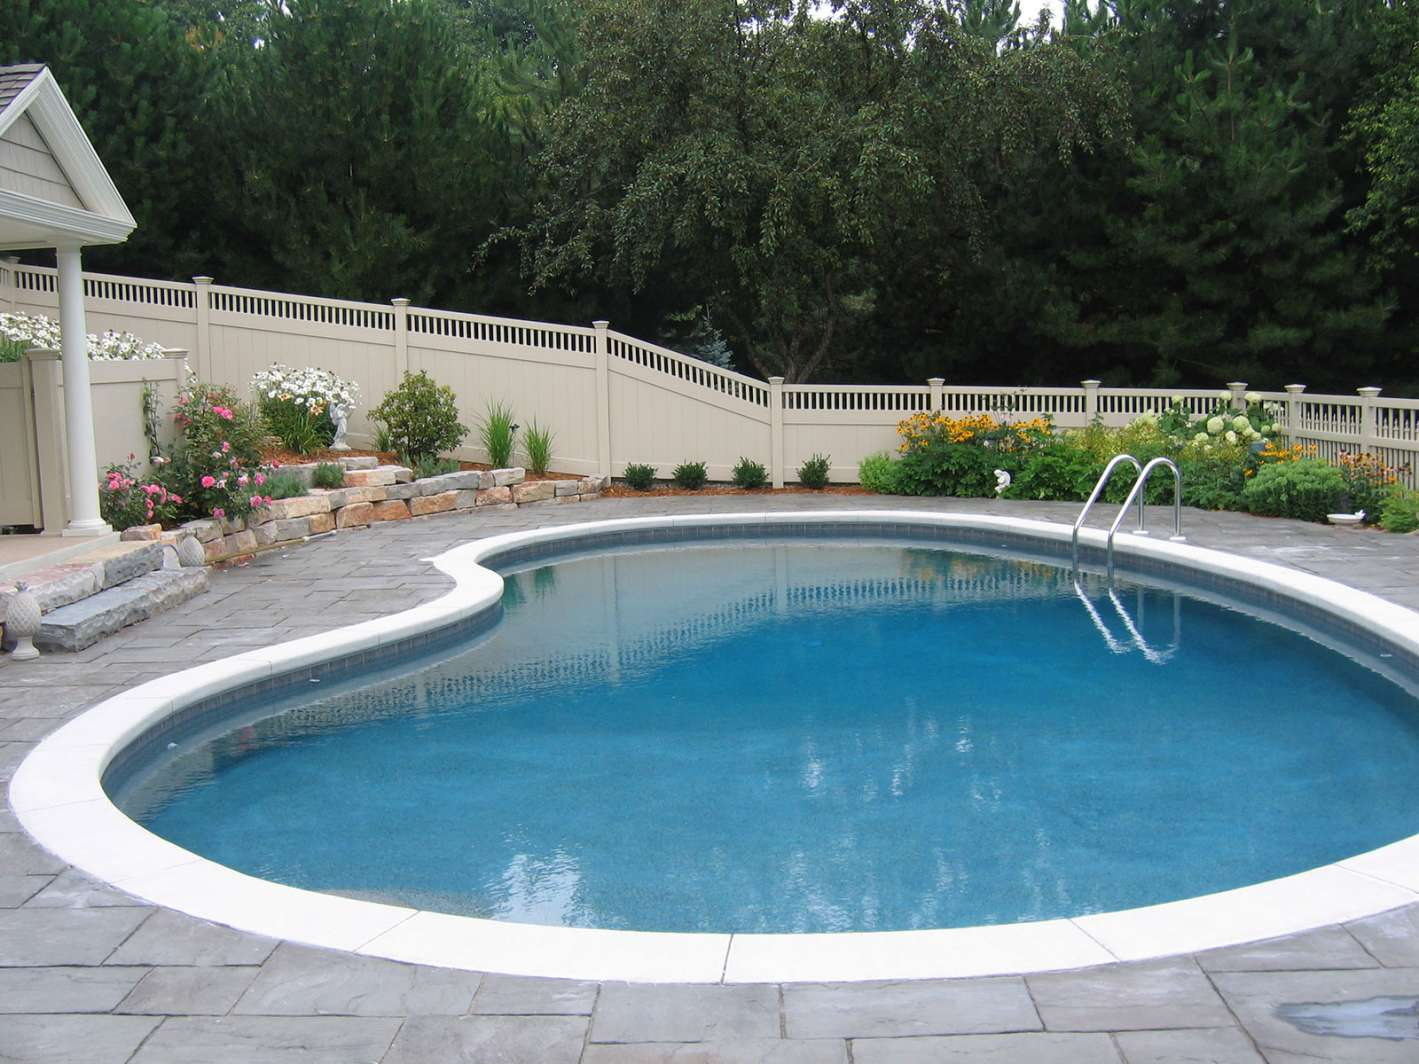 Pool design and installation photo gallery in appleton wi for Pool design inspiration